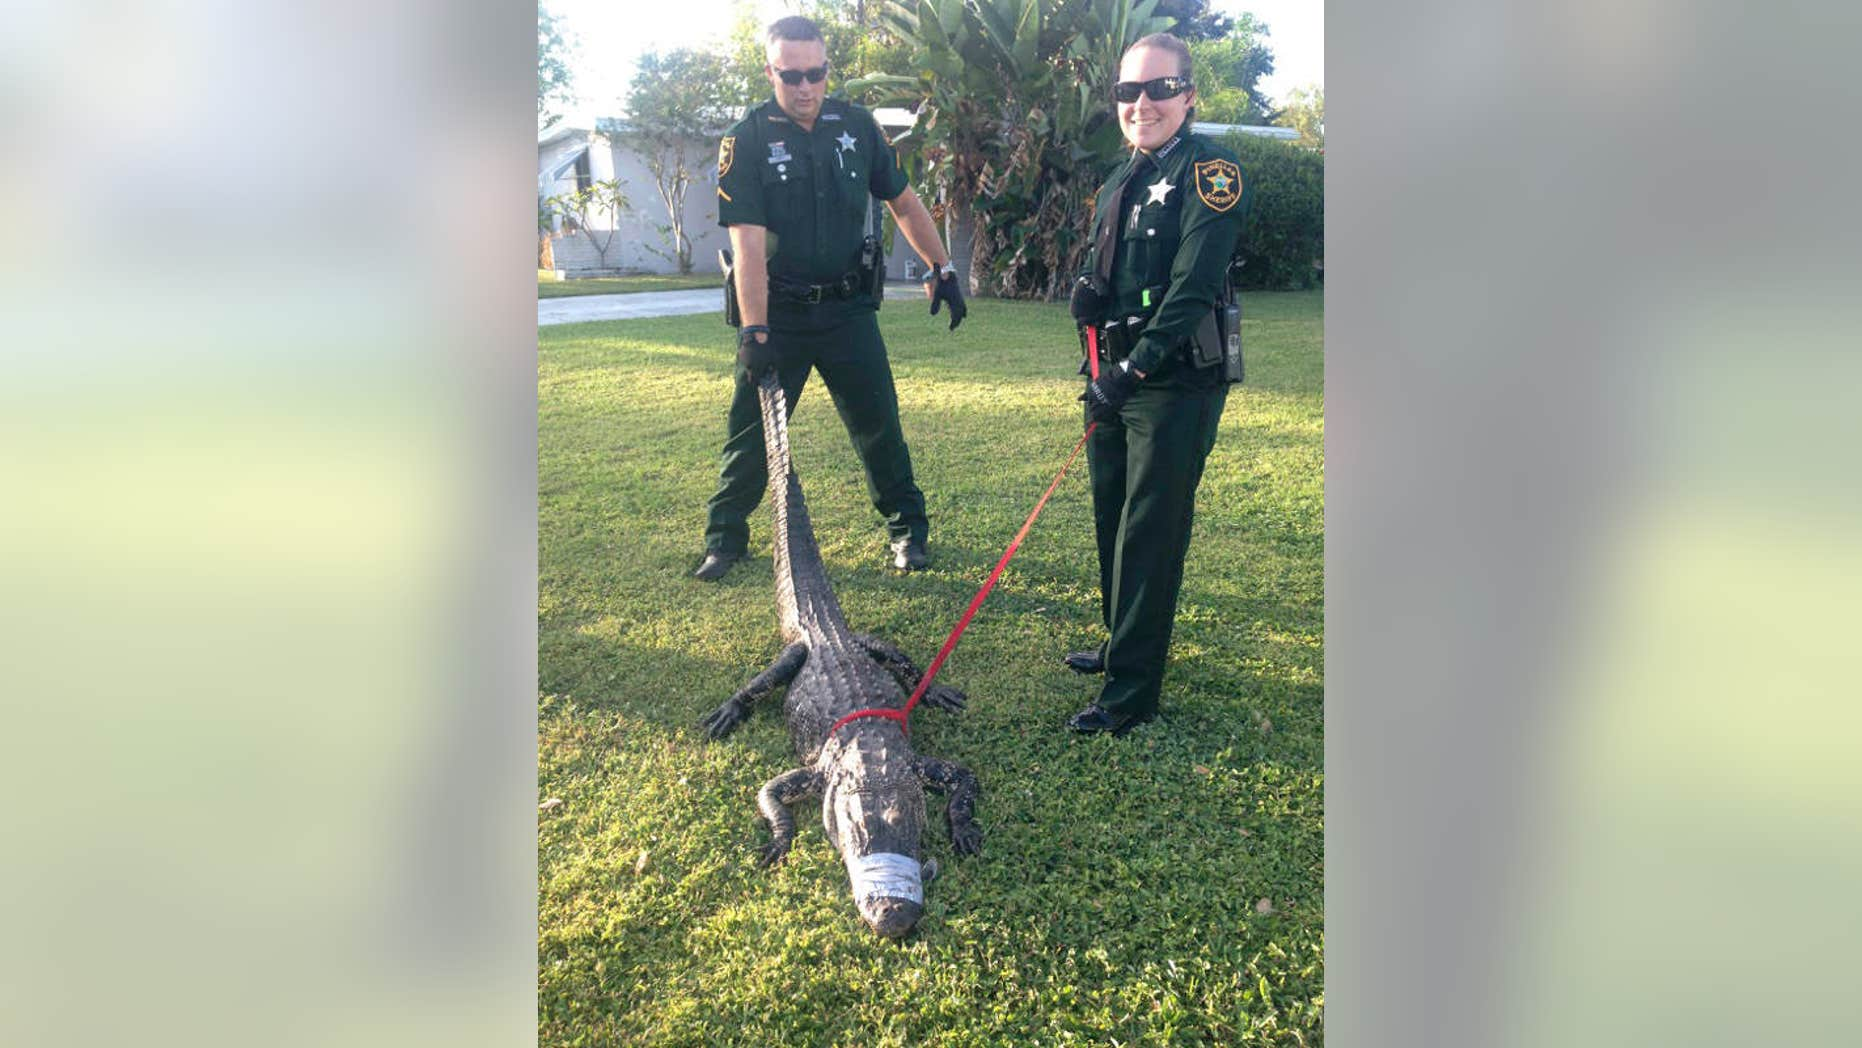 Oct. 23, 2015: In this undated photo provided by the Pinellas County Sheriff's Office, two deputies hold an alligator that had been stuck in a storm drain in Seminole, Fla.